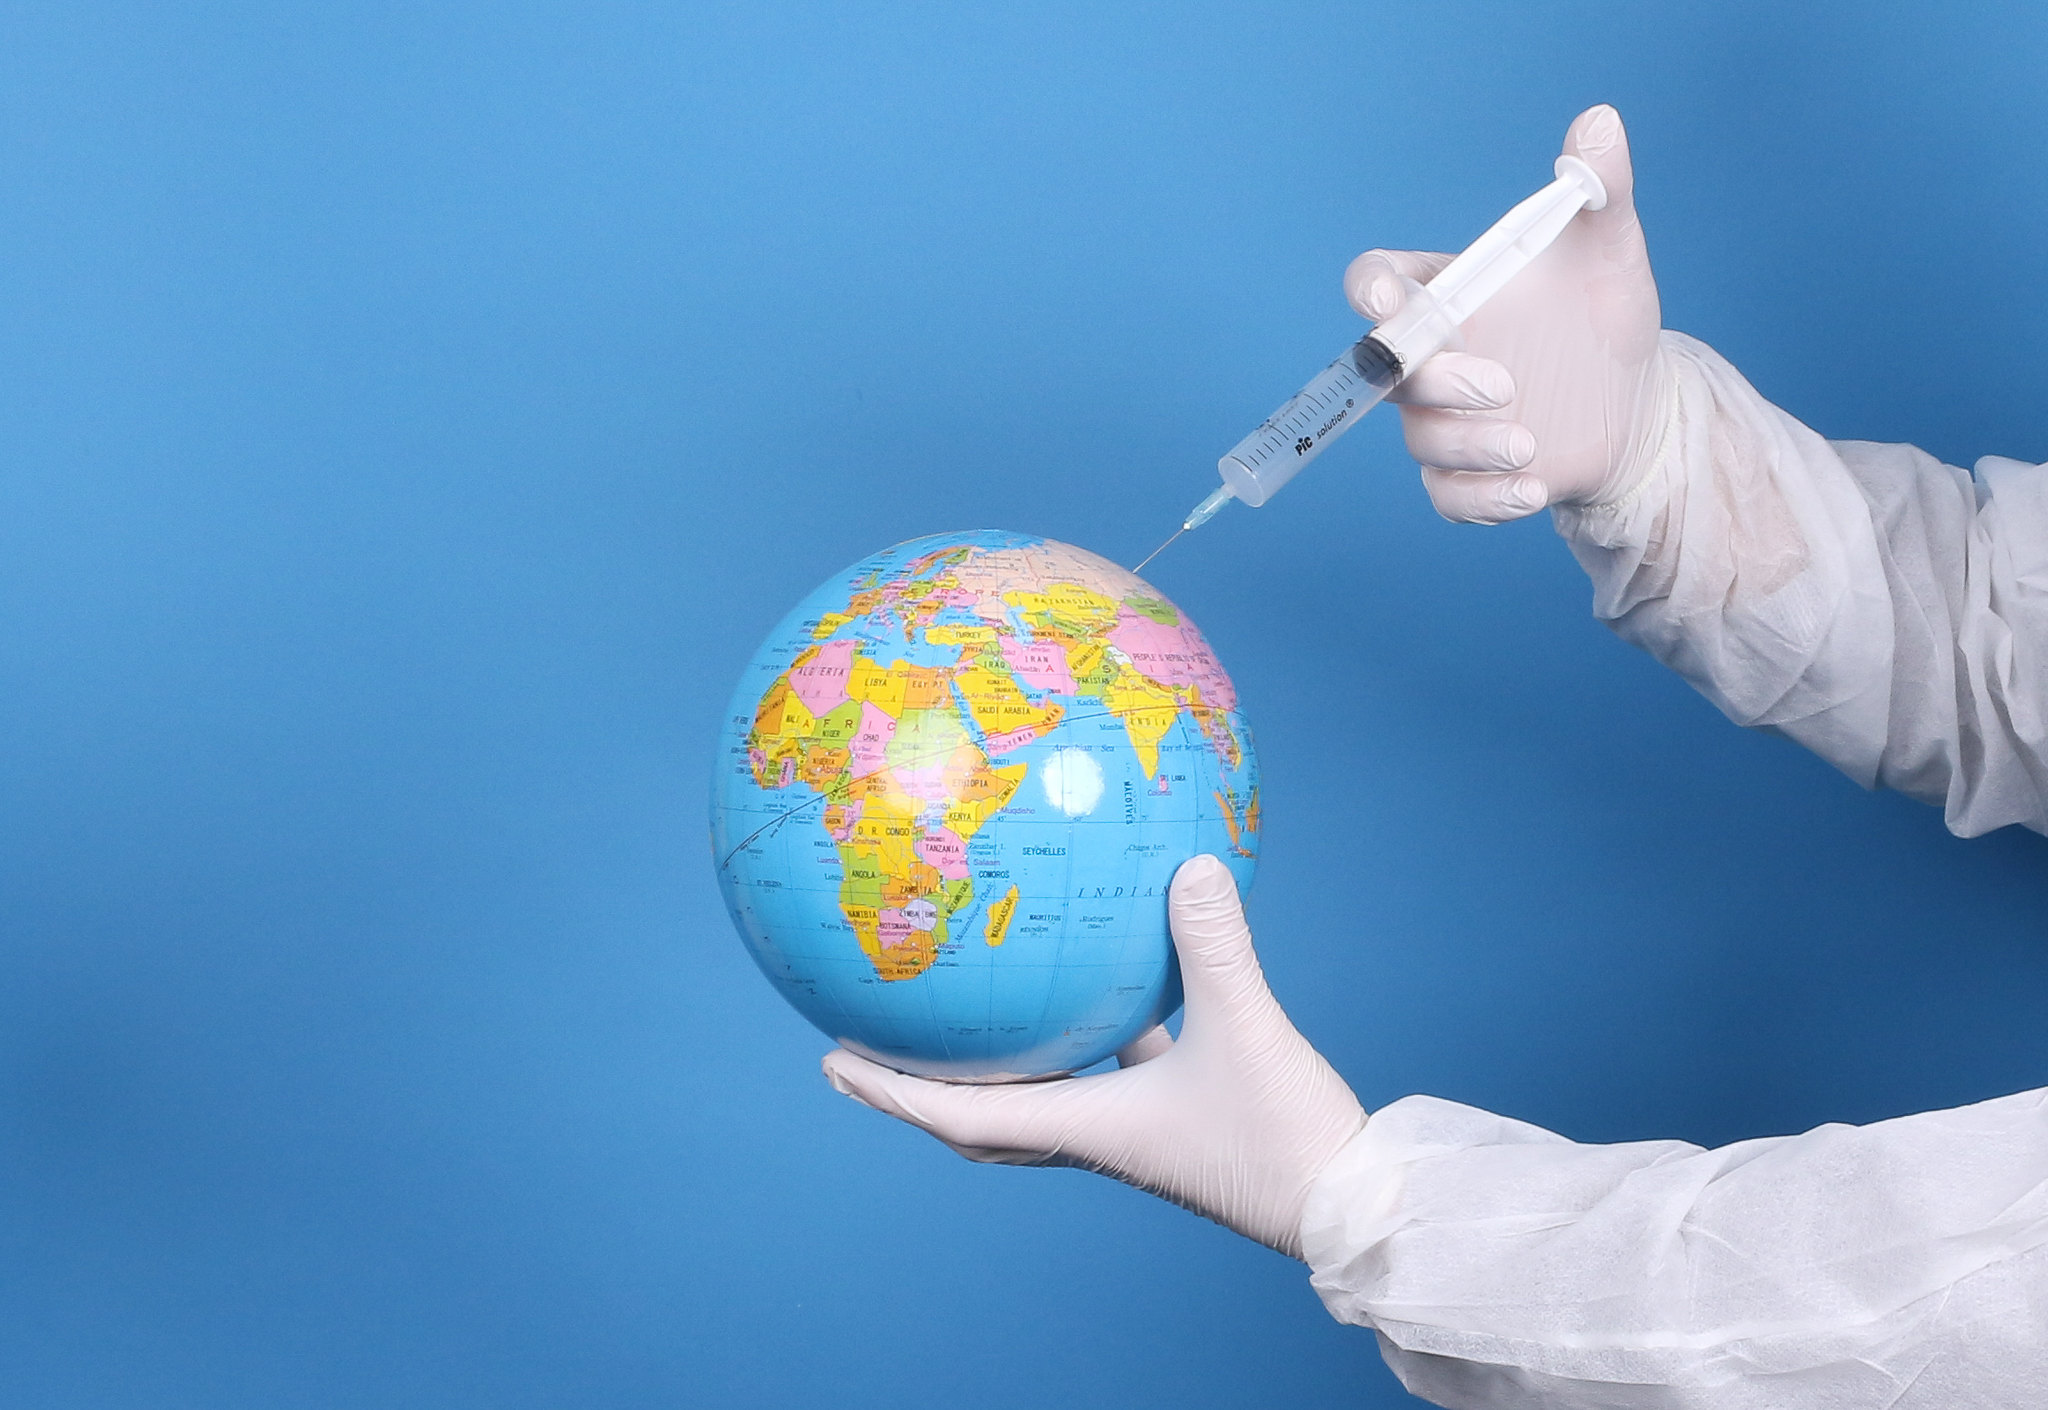 No patents in a pandemic: COVID-19 profiteering a risk to global health